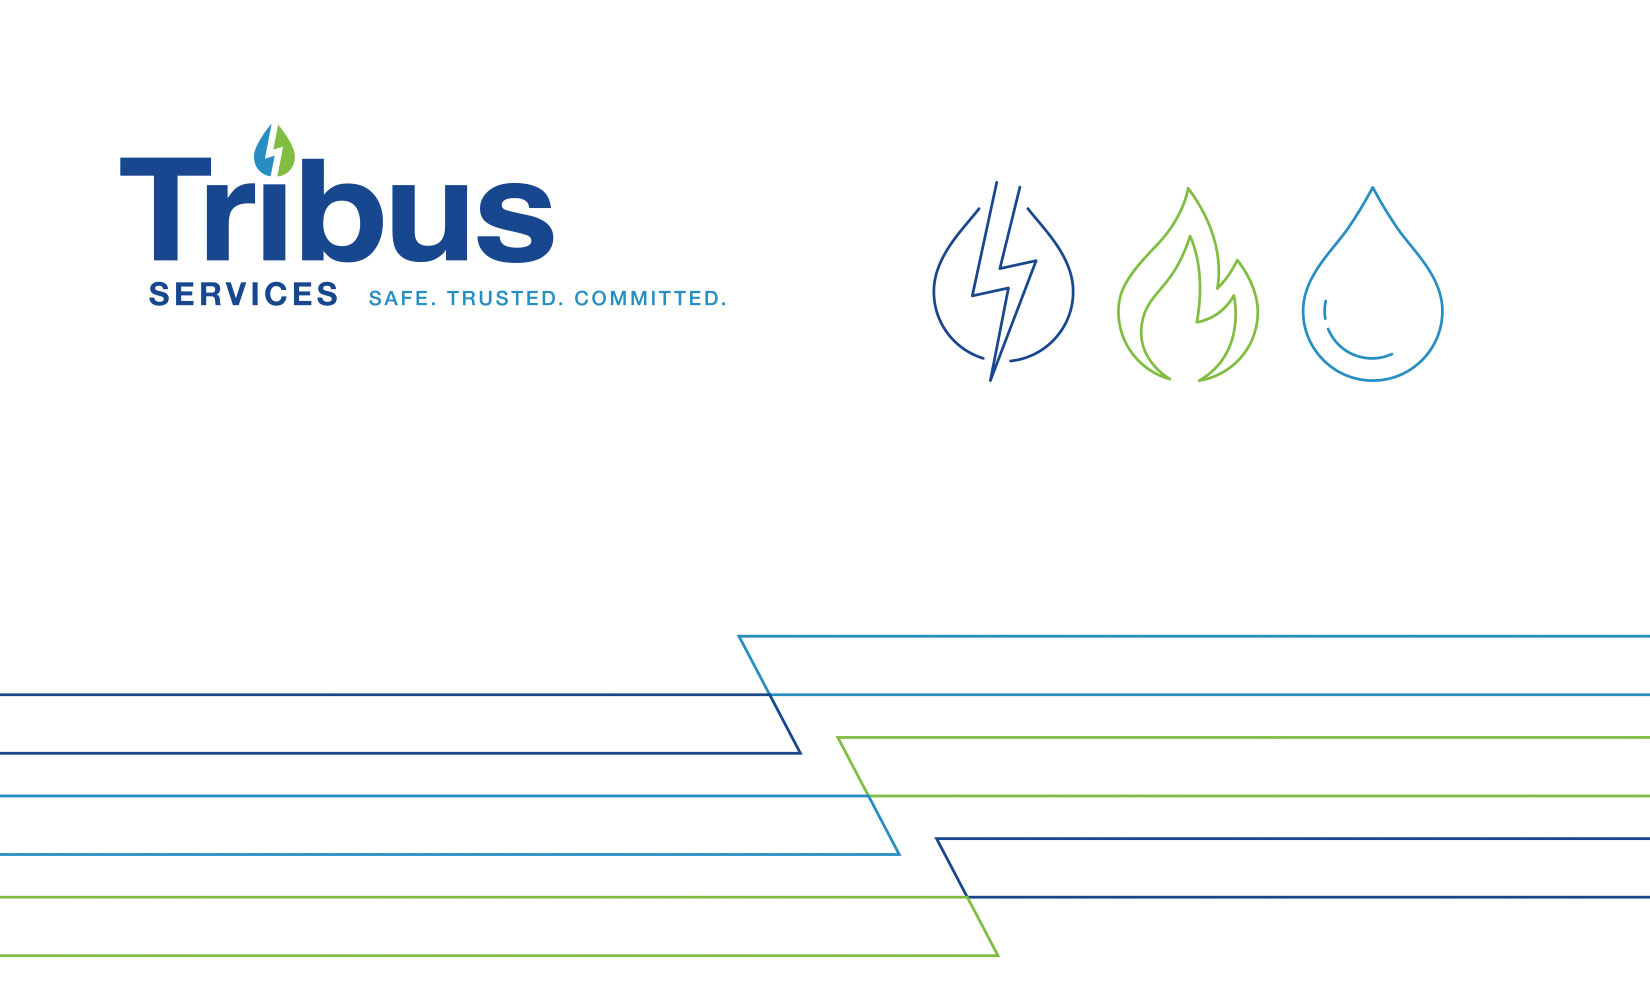 Tribus Branded Environment - Wall graphics